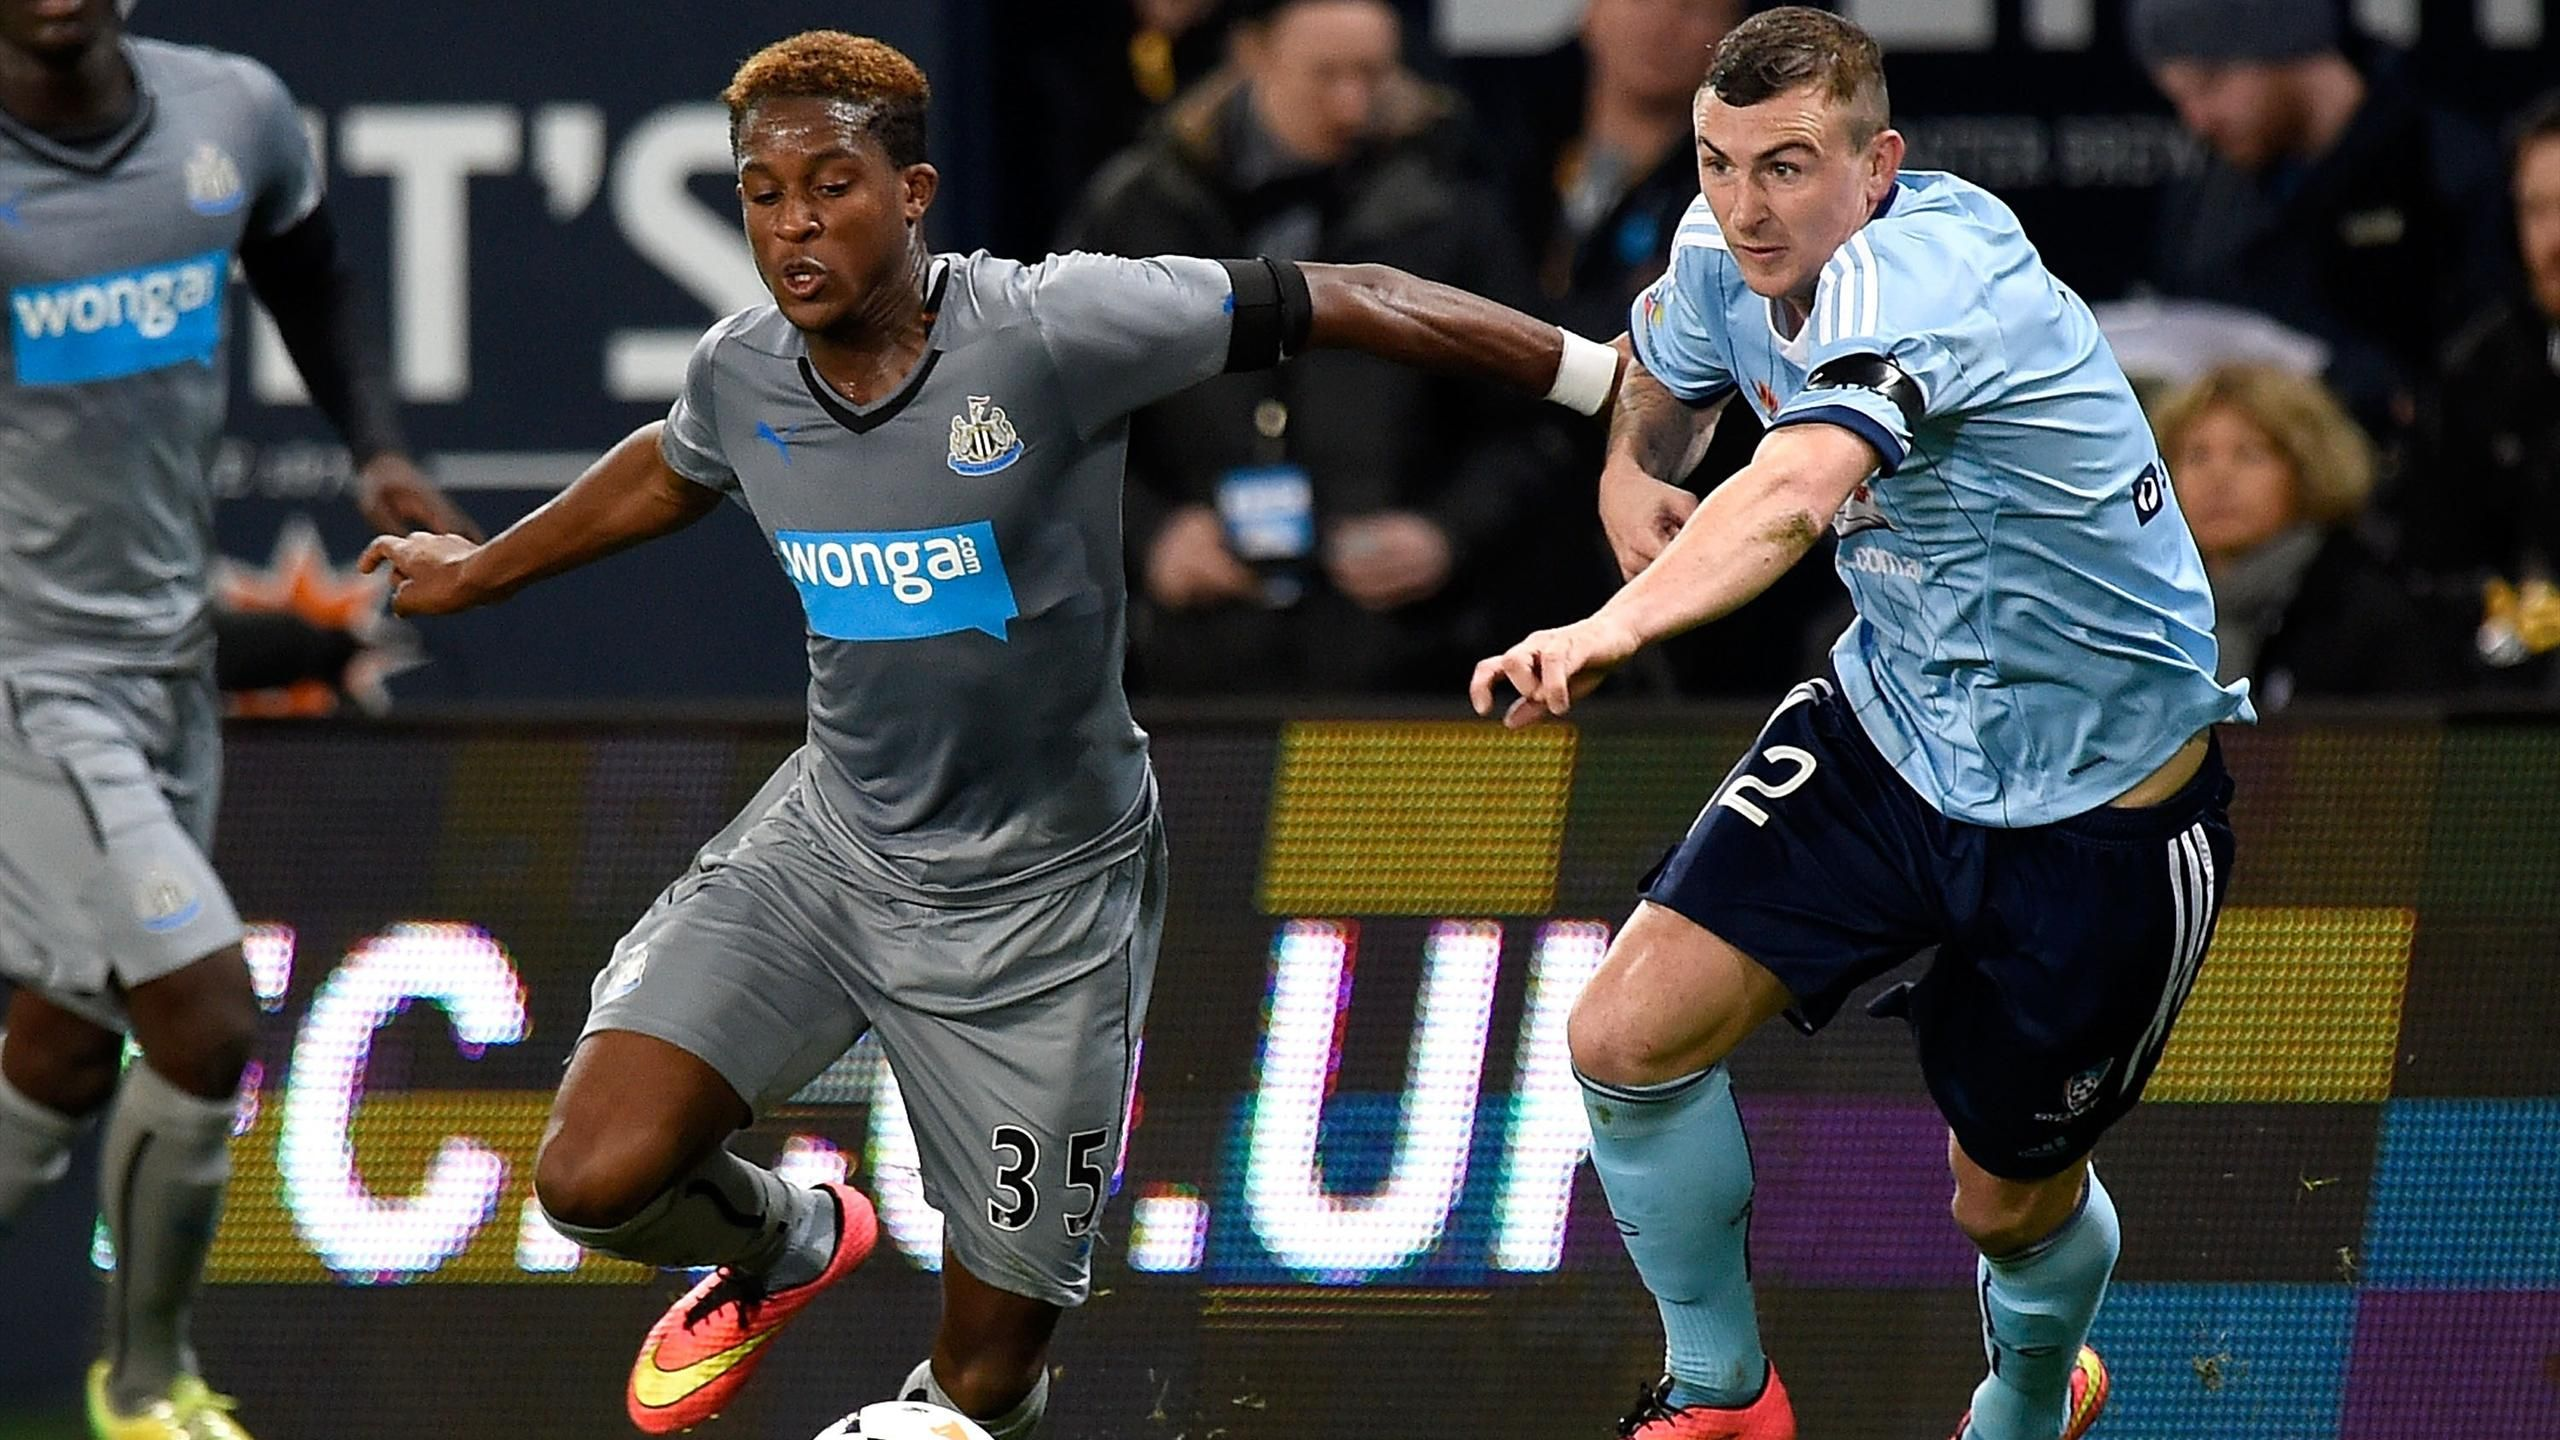 Friendly match - New signings impress as Newcastle cruise past Sydney